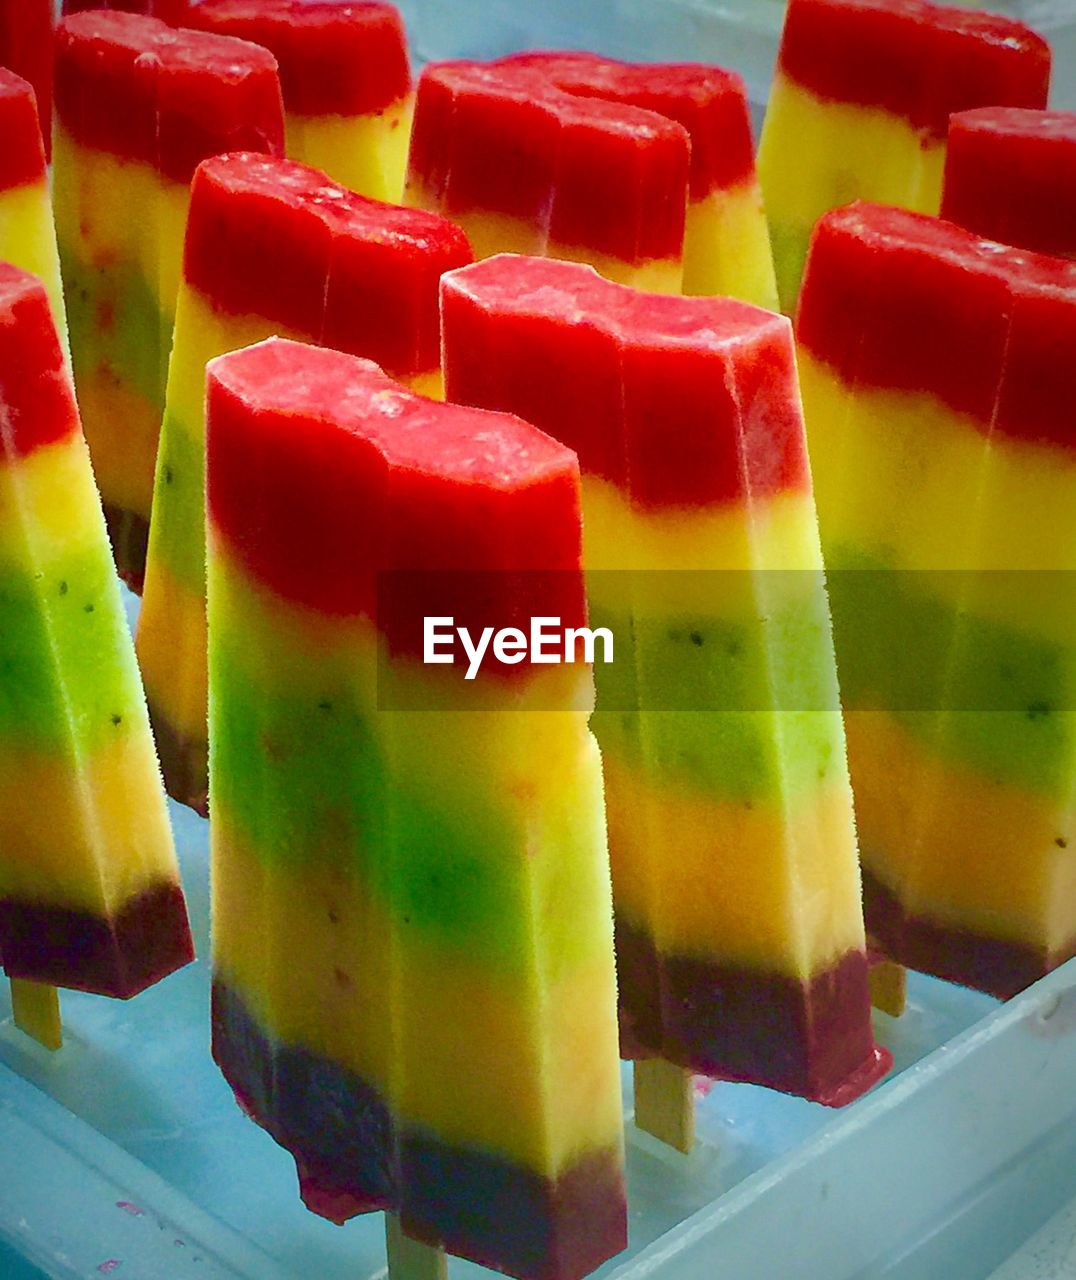 food and drink, multi colored, sweet food, food, still life, indulgence, indoors, freshness, dessert, no people, temptation, ready-to-eat, close-up, red, gelatin dessert, flavored ice, day